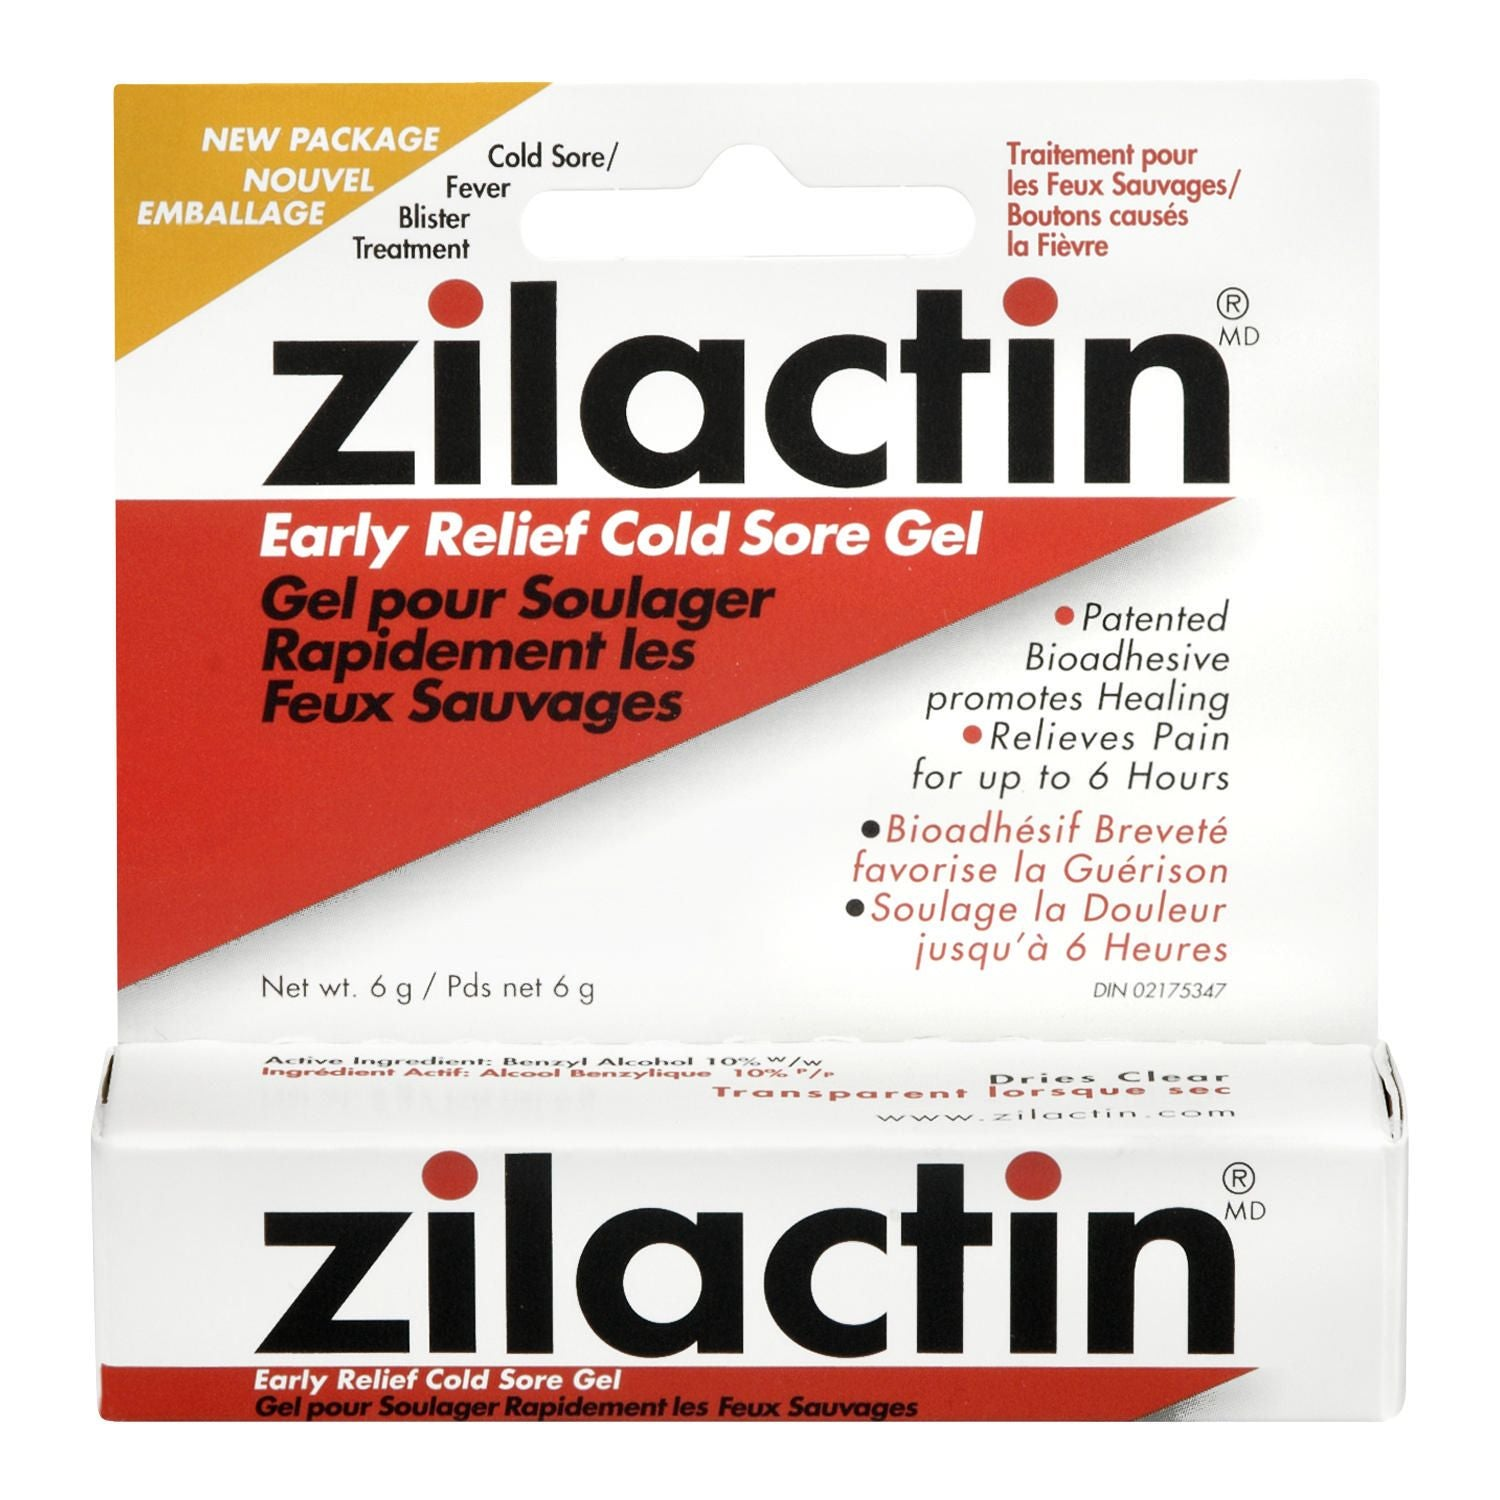 Zilactin Early Relief Cold Sore Gel 6g